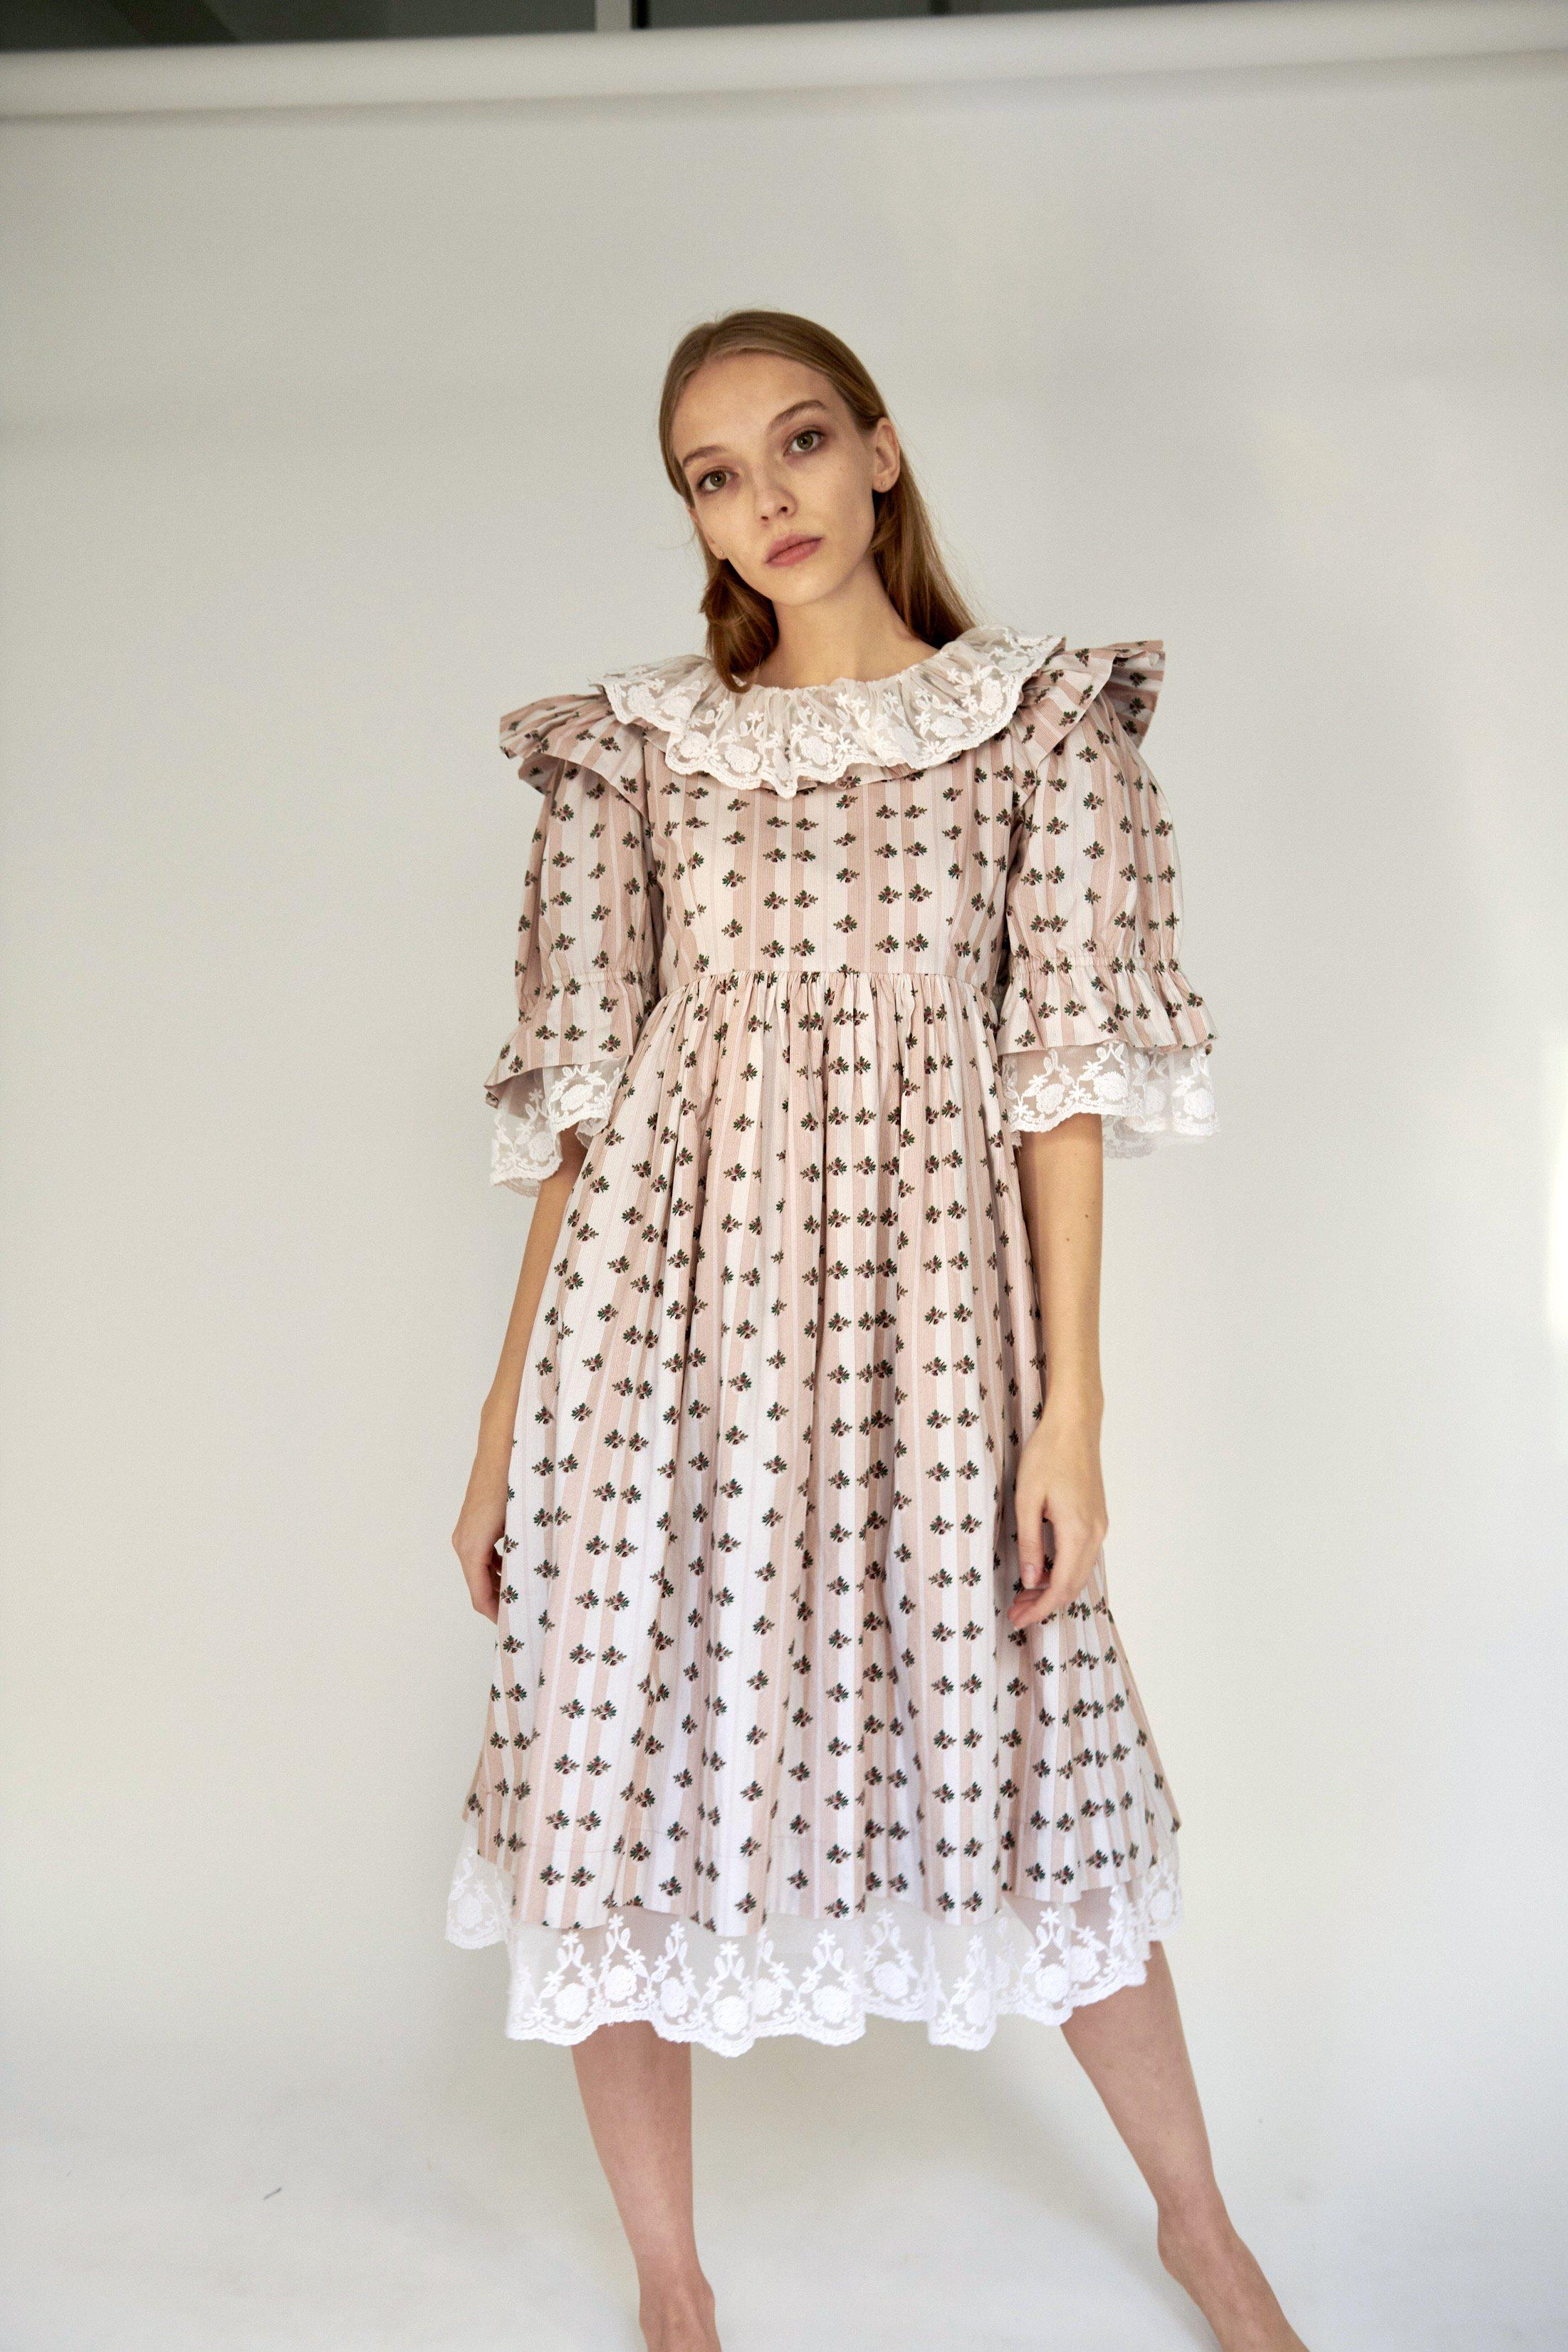 Chamomile Dress in Blush Striped Floral 3